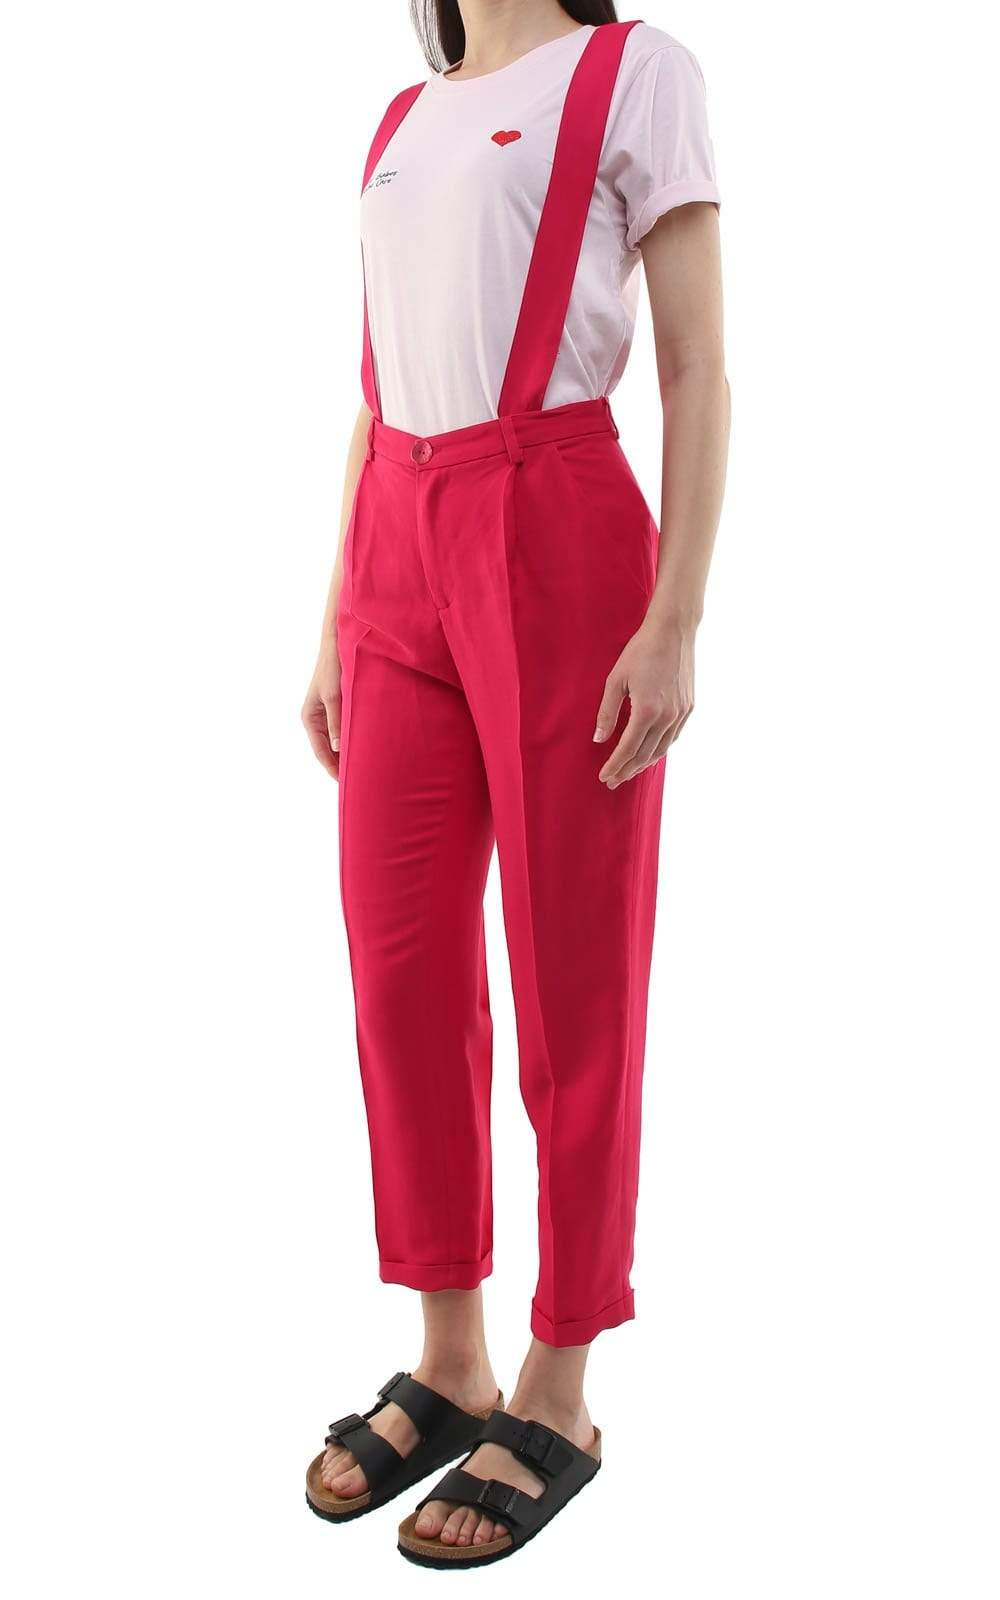 Souldaze Collection pant Jane Trousers with Removable Suspenders. Linen and Surplus Viscose. sustainable fashion ethical fashion